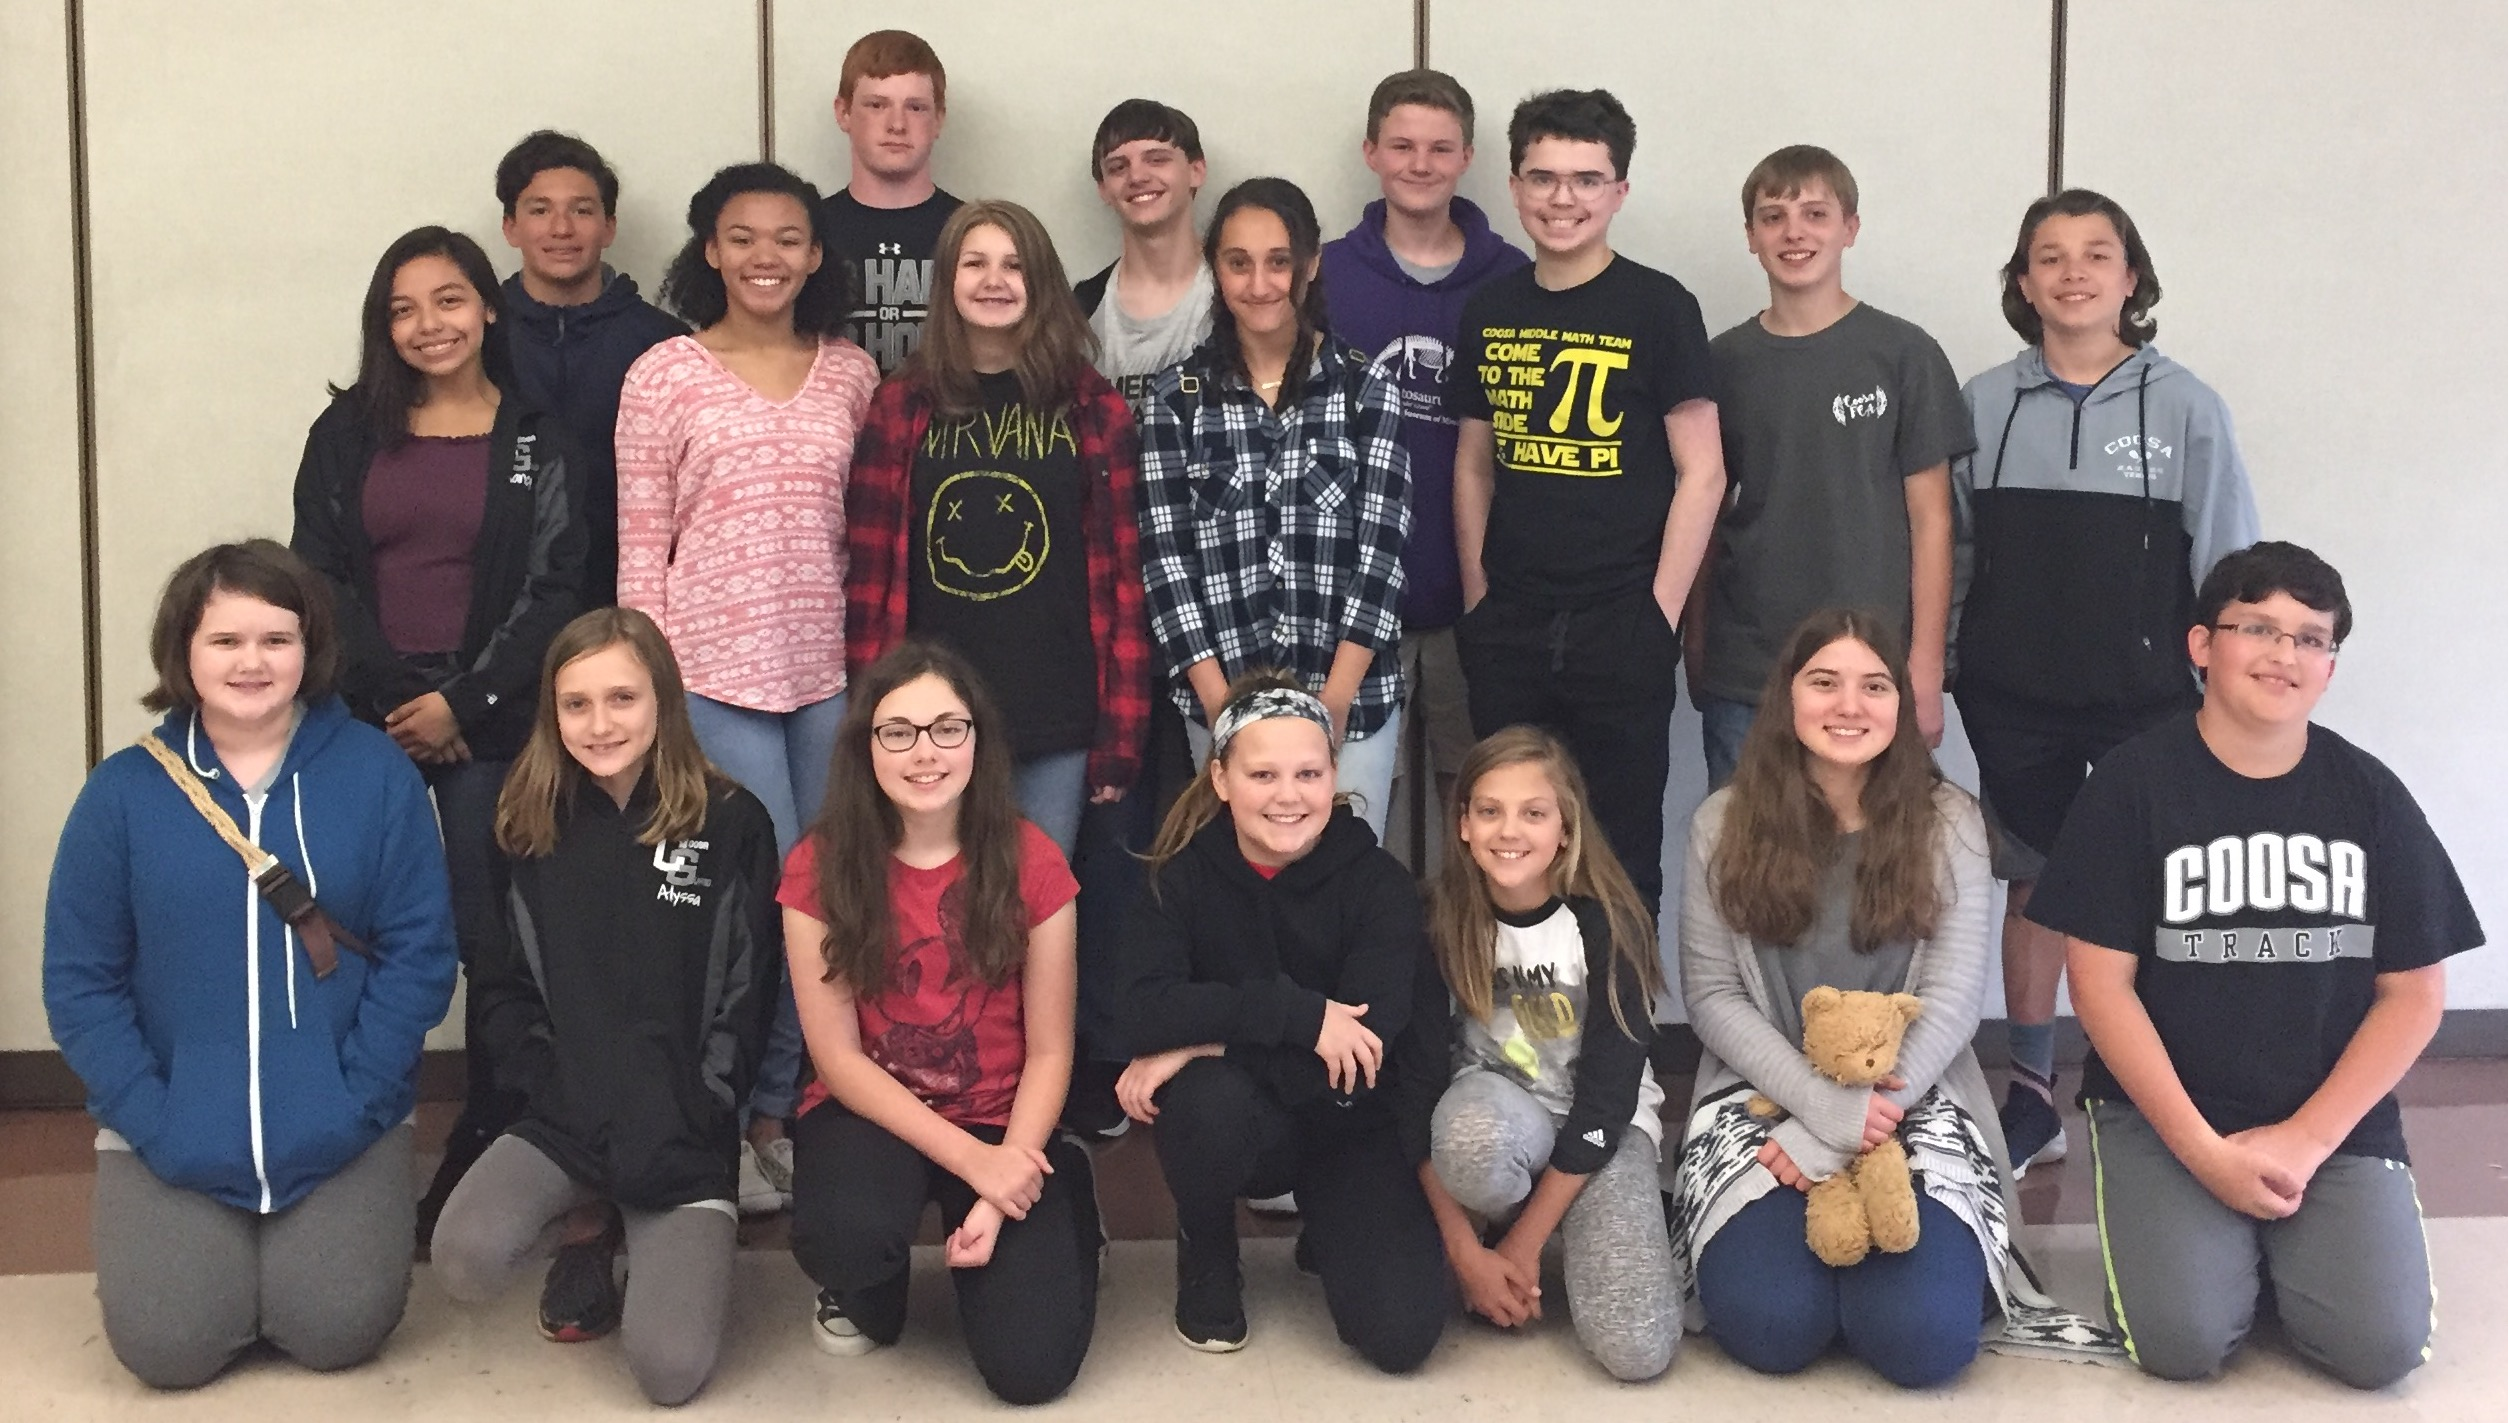 Coosa Middle wins annual Floyd County Schools Middle School Math Competition